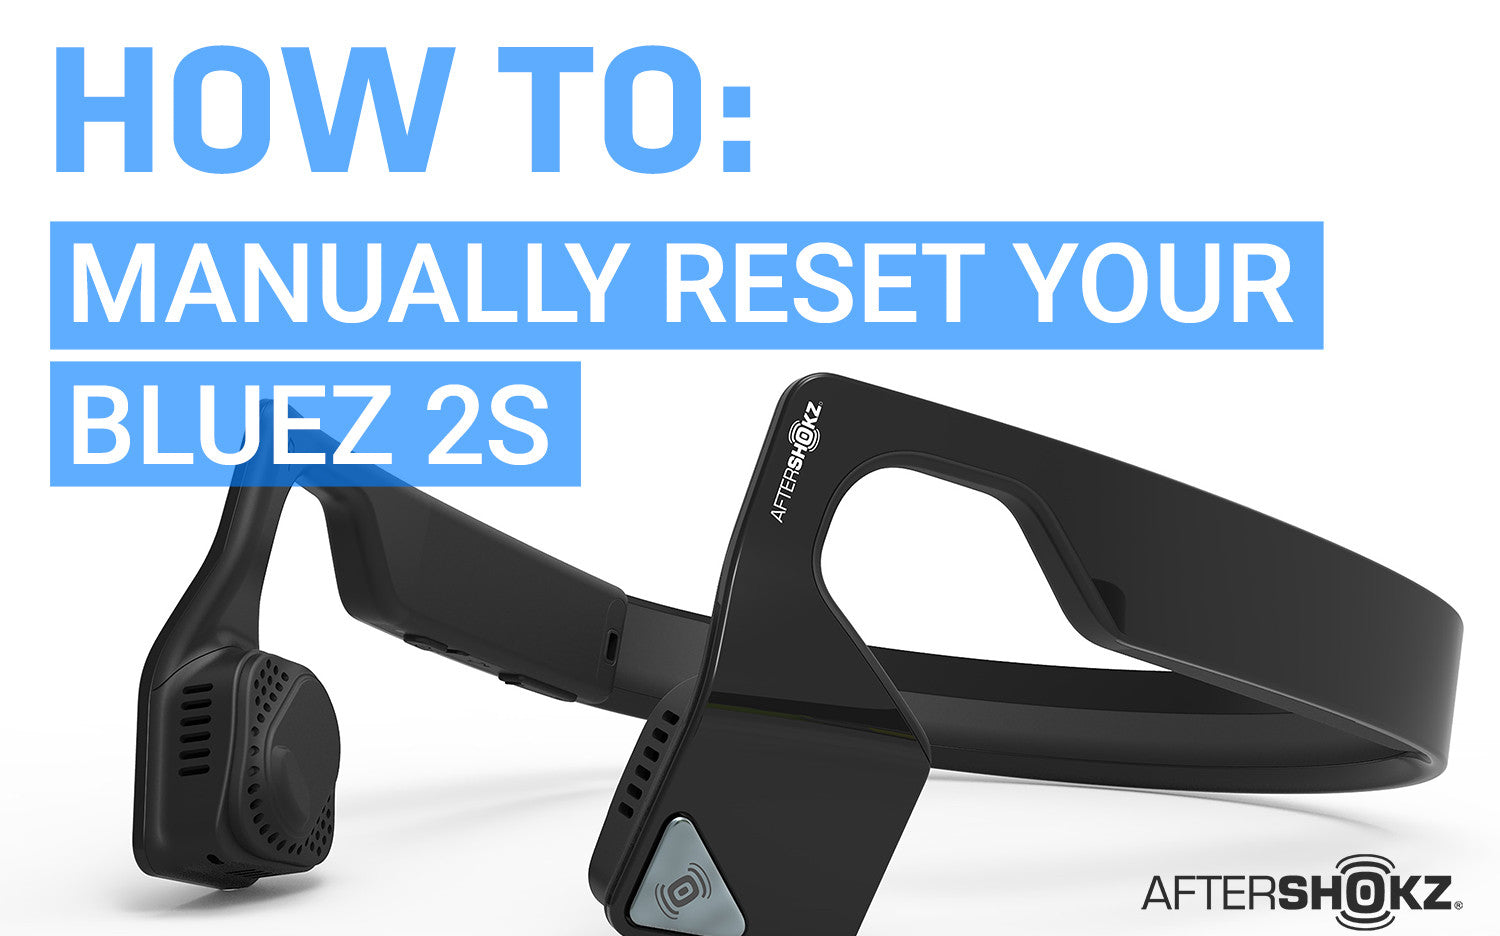 How To Manually Reset Your Bluez 2S Wired Headphones